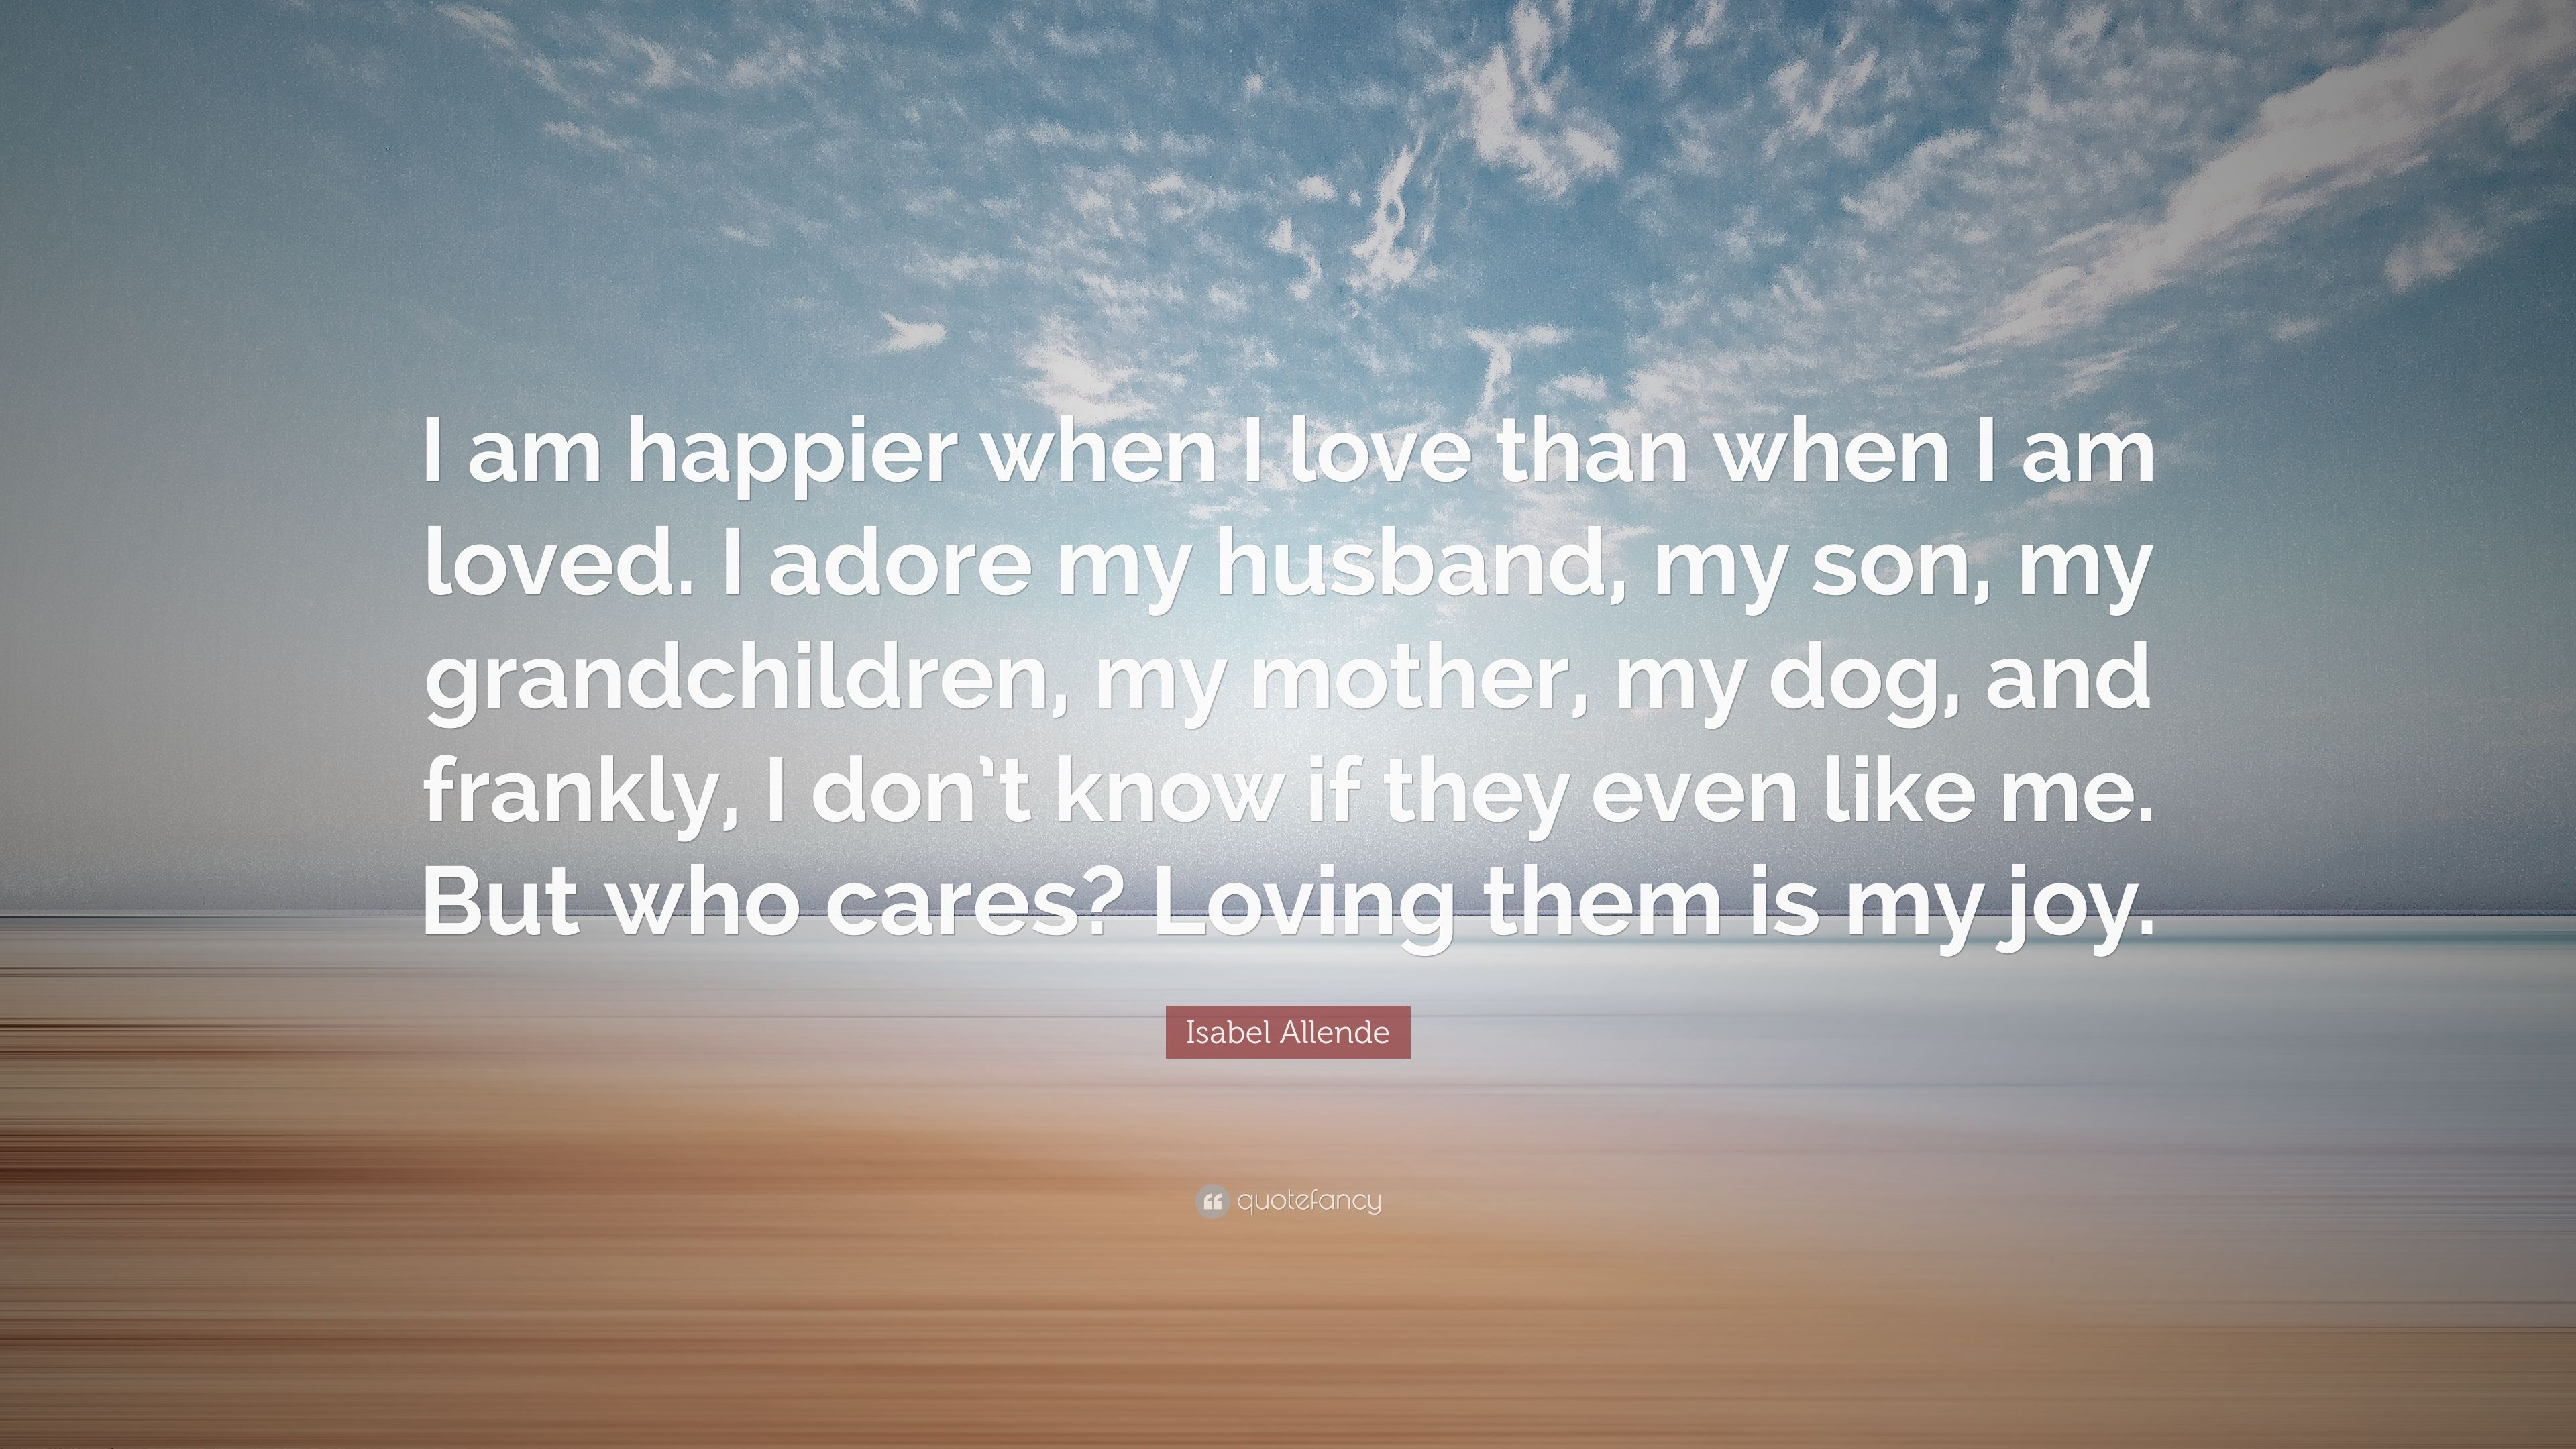 Isabel allende quote i am happier when i love than when i am loved i adore my husband my son - Wallpaper i love my husband ...